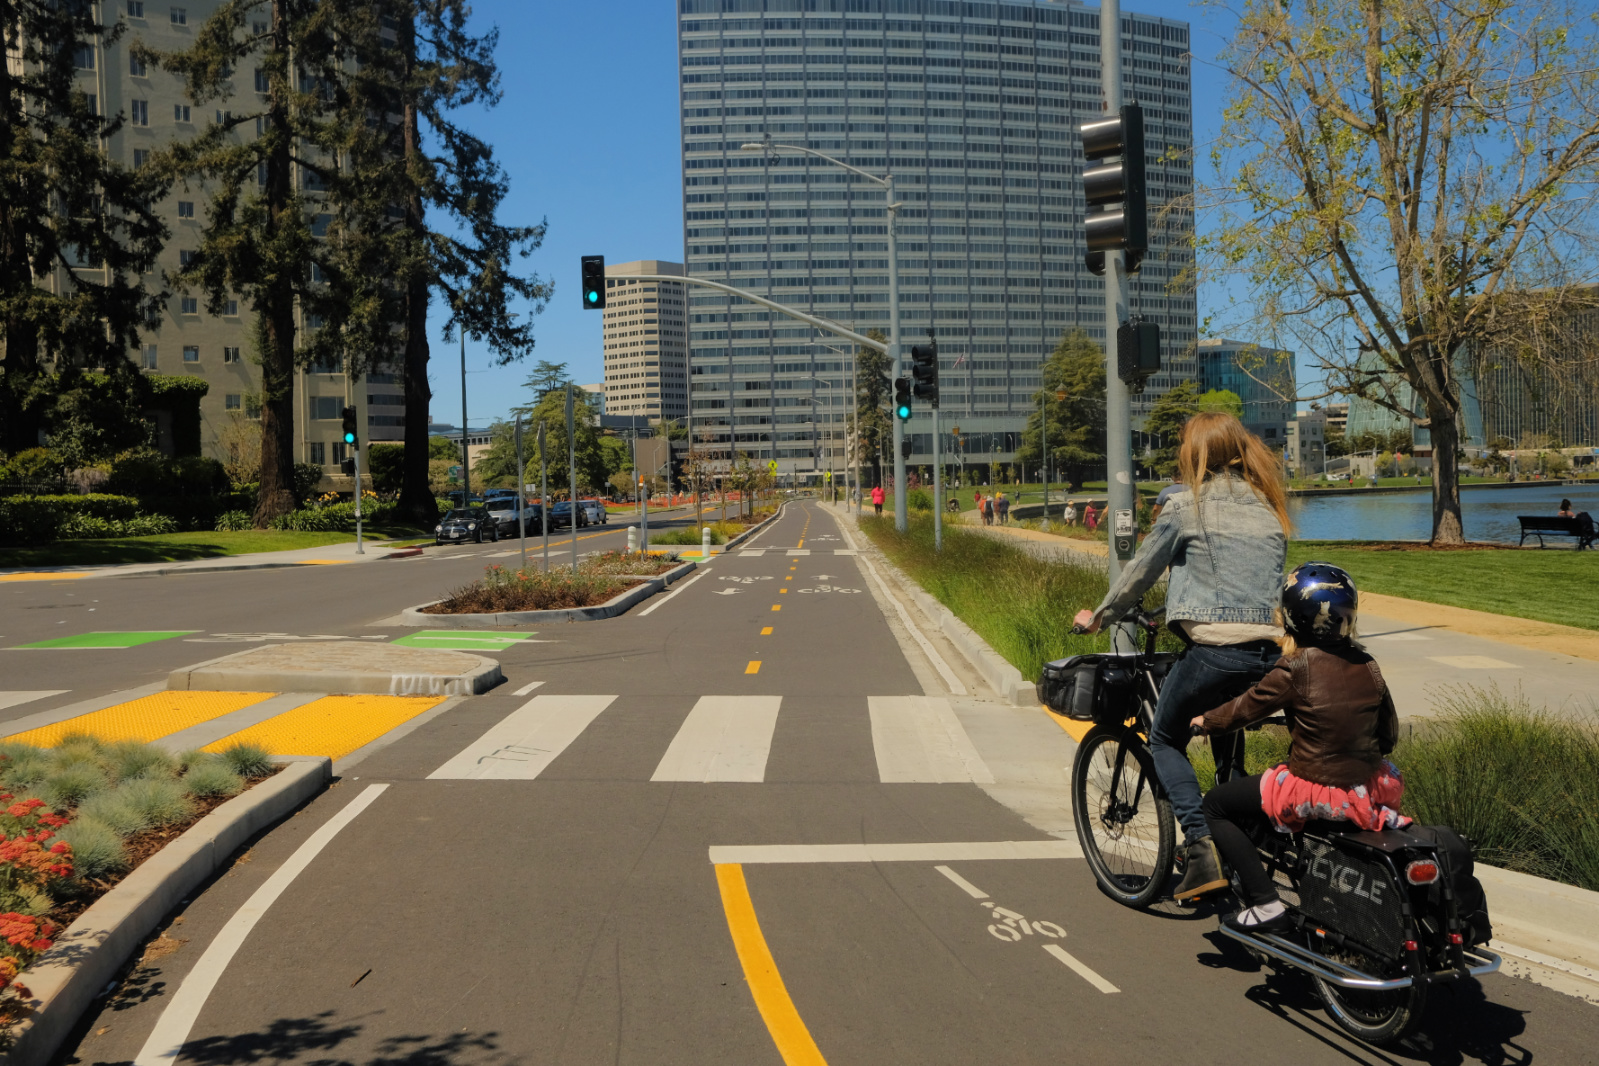 Lake Merritt cycletrack. Photo by Kyle Ramey of Bikabout